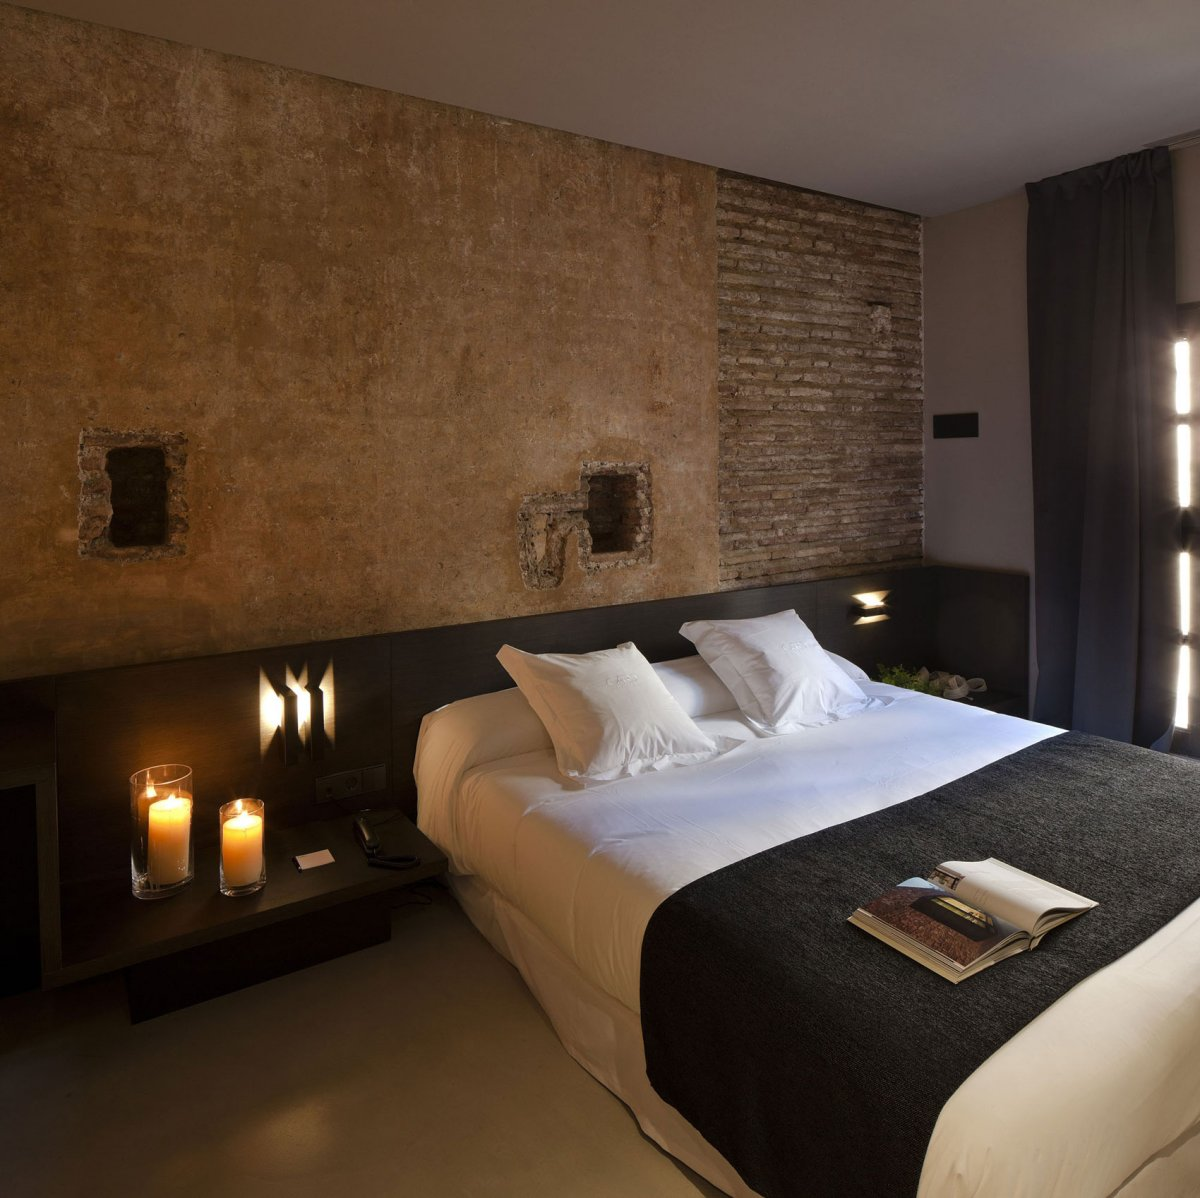 Modern Classic And Rustic Bedrooms: Color Roundup: Rustic Stone And Brick Used In Interior